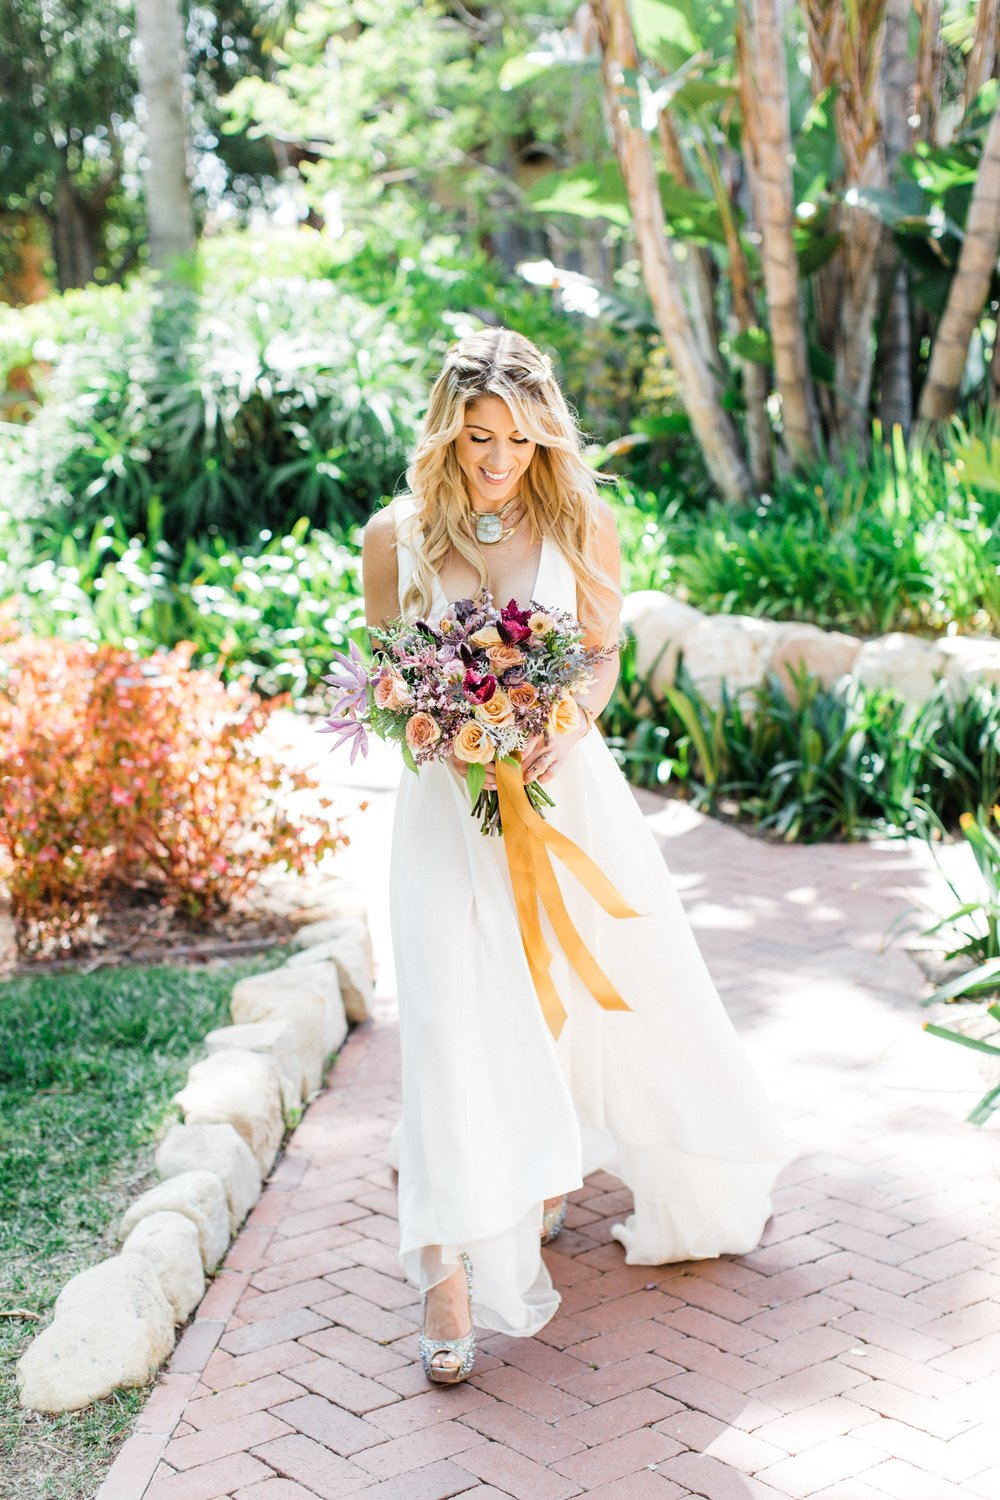 Anna Delores Photography_Wild Heart Events 05.16.17-8291.jpg